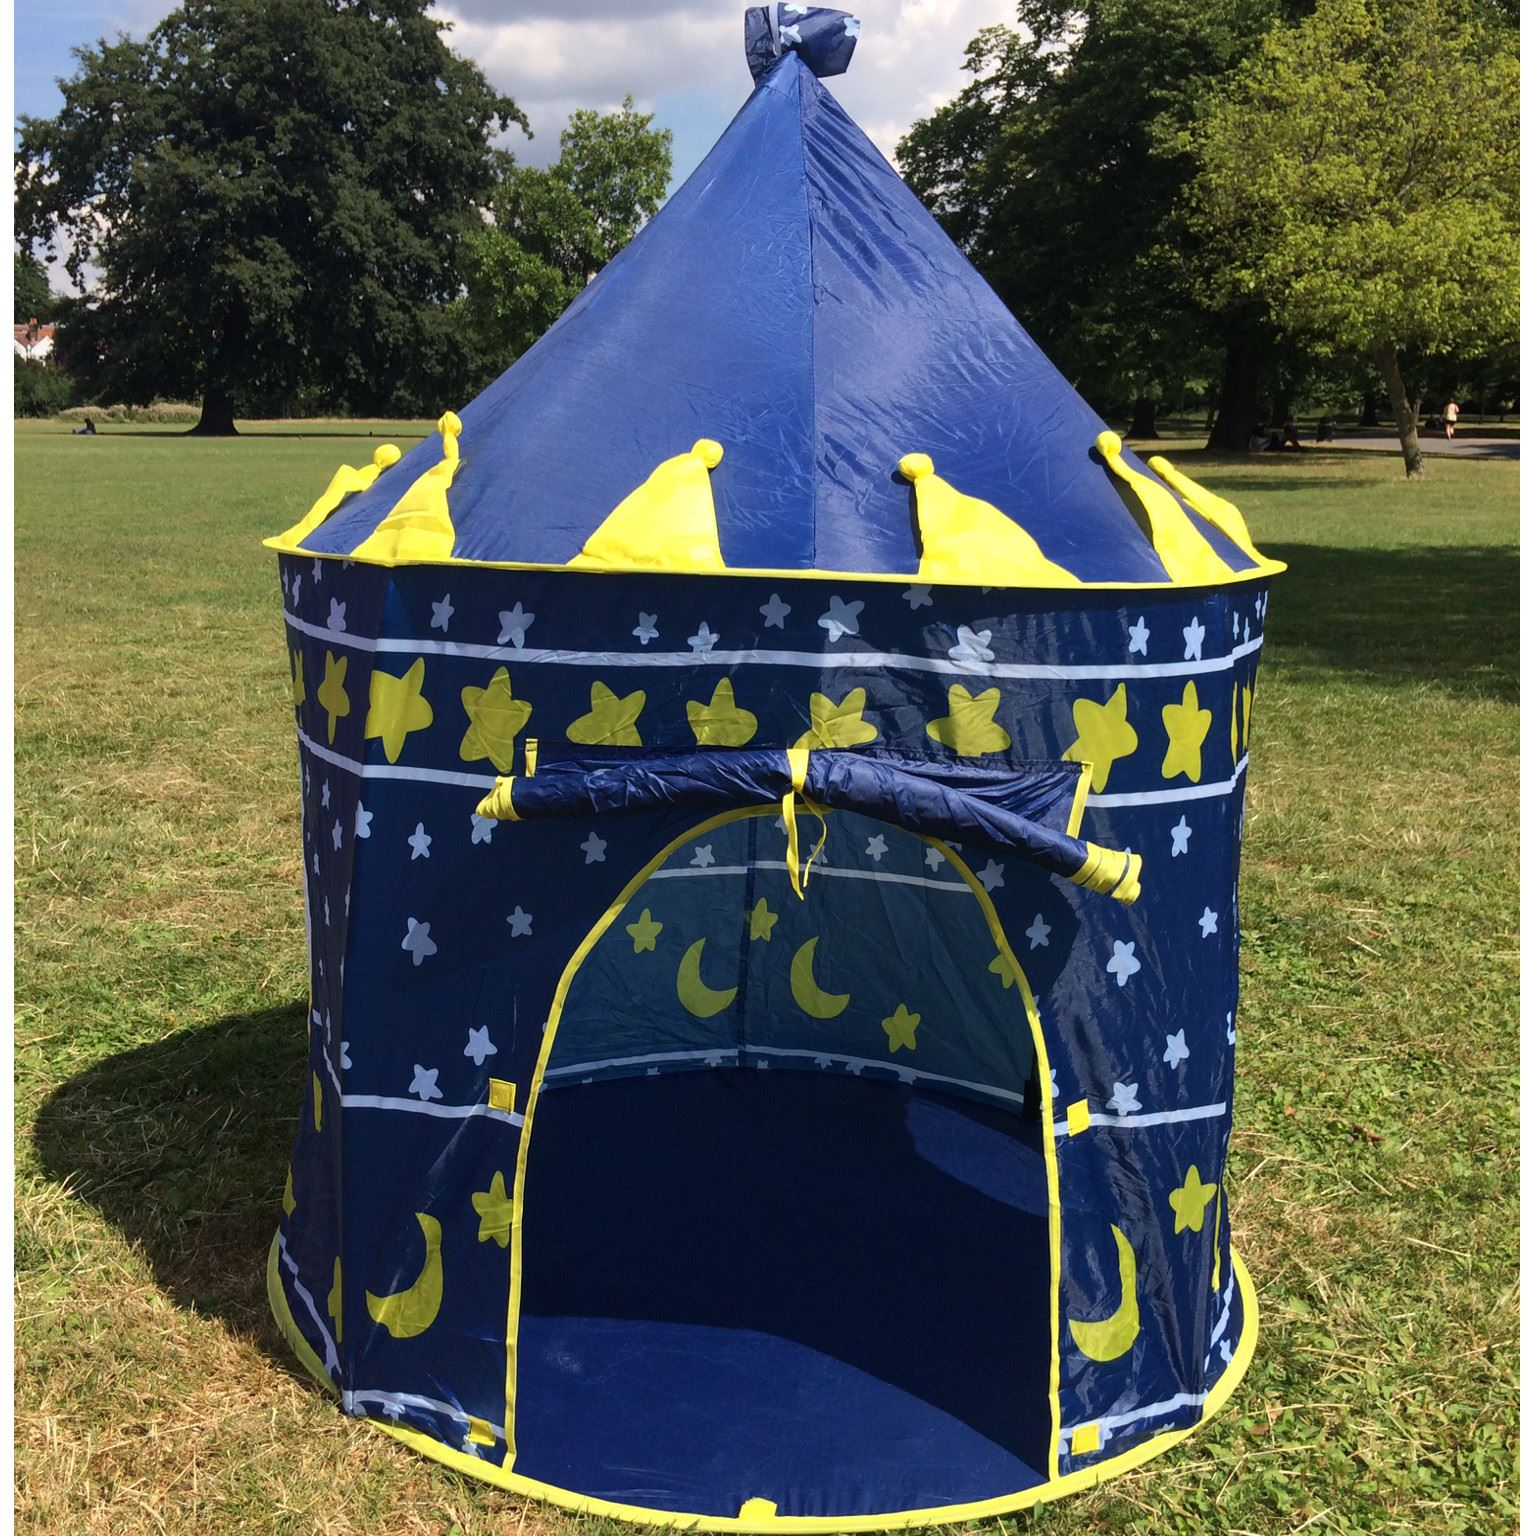 childrens kids pop up play tent castle pink blue playhouse outdoor and indoor. Black Bedroom Furniture Sets. Home Design Ideas